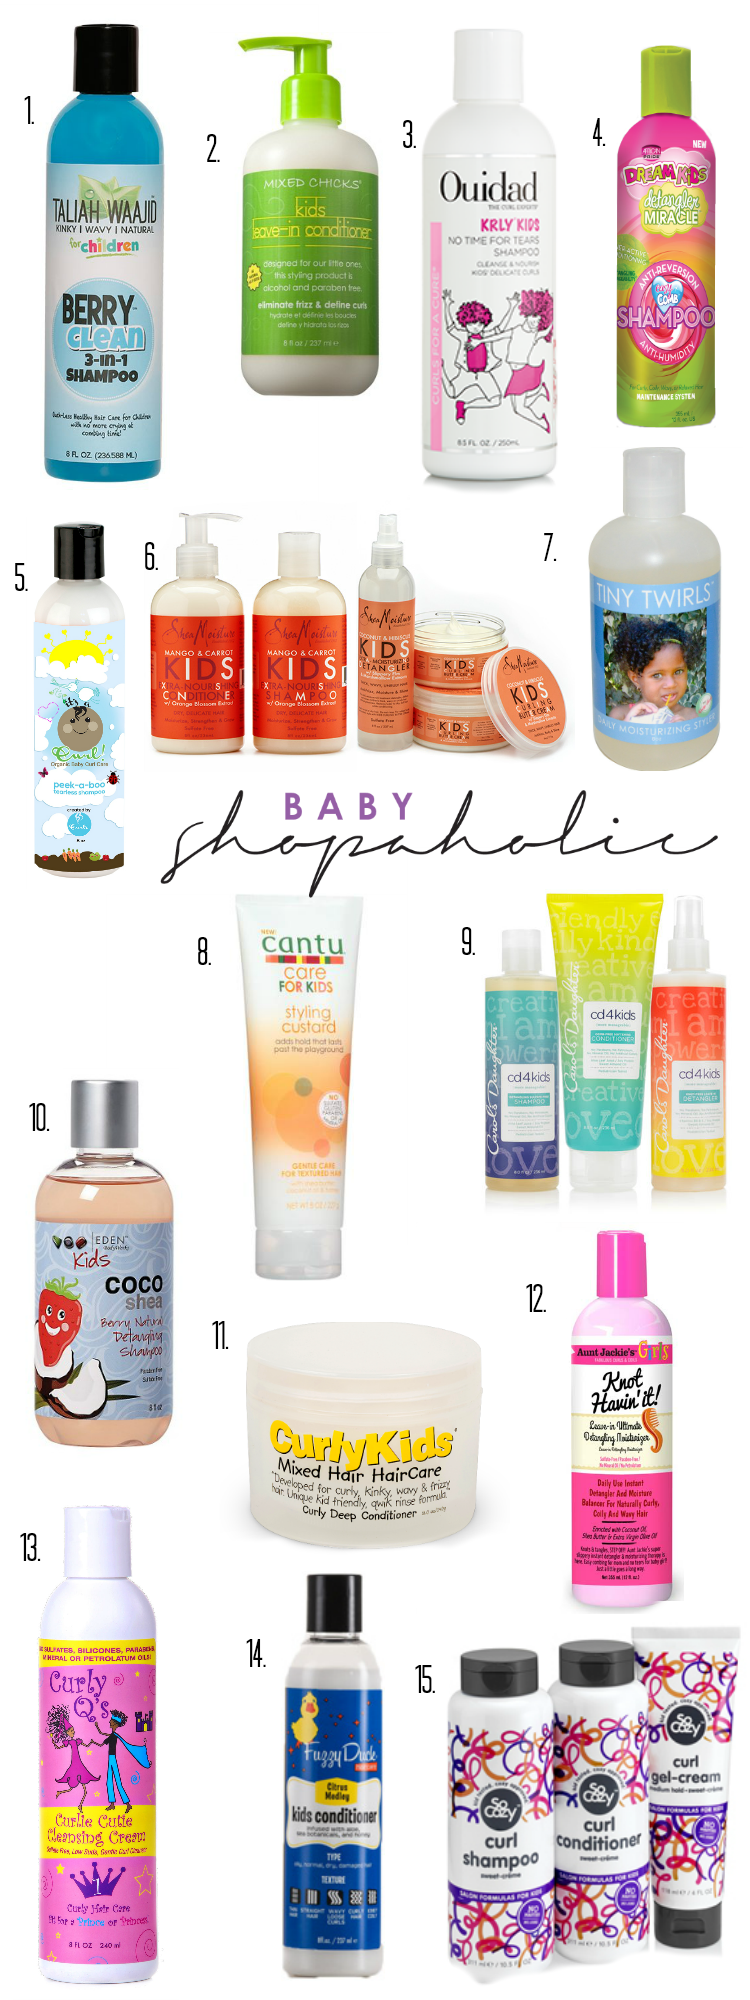 baby hair care products for curly hair online